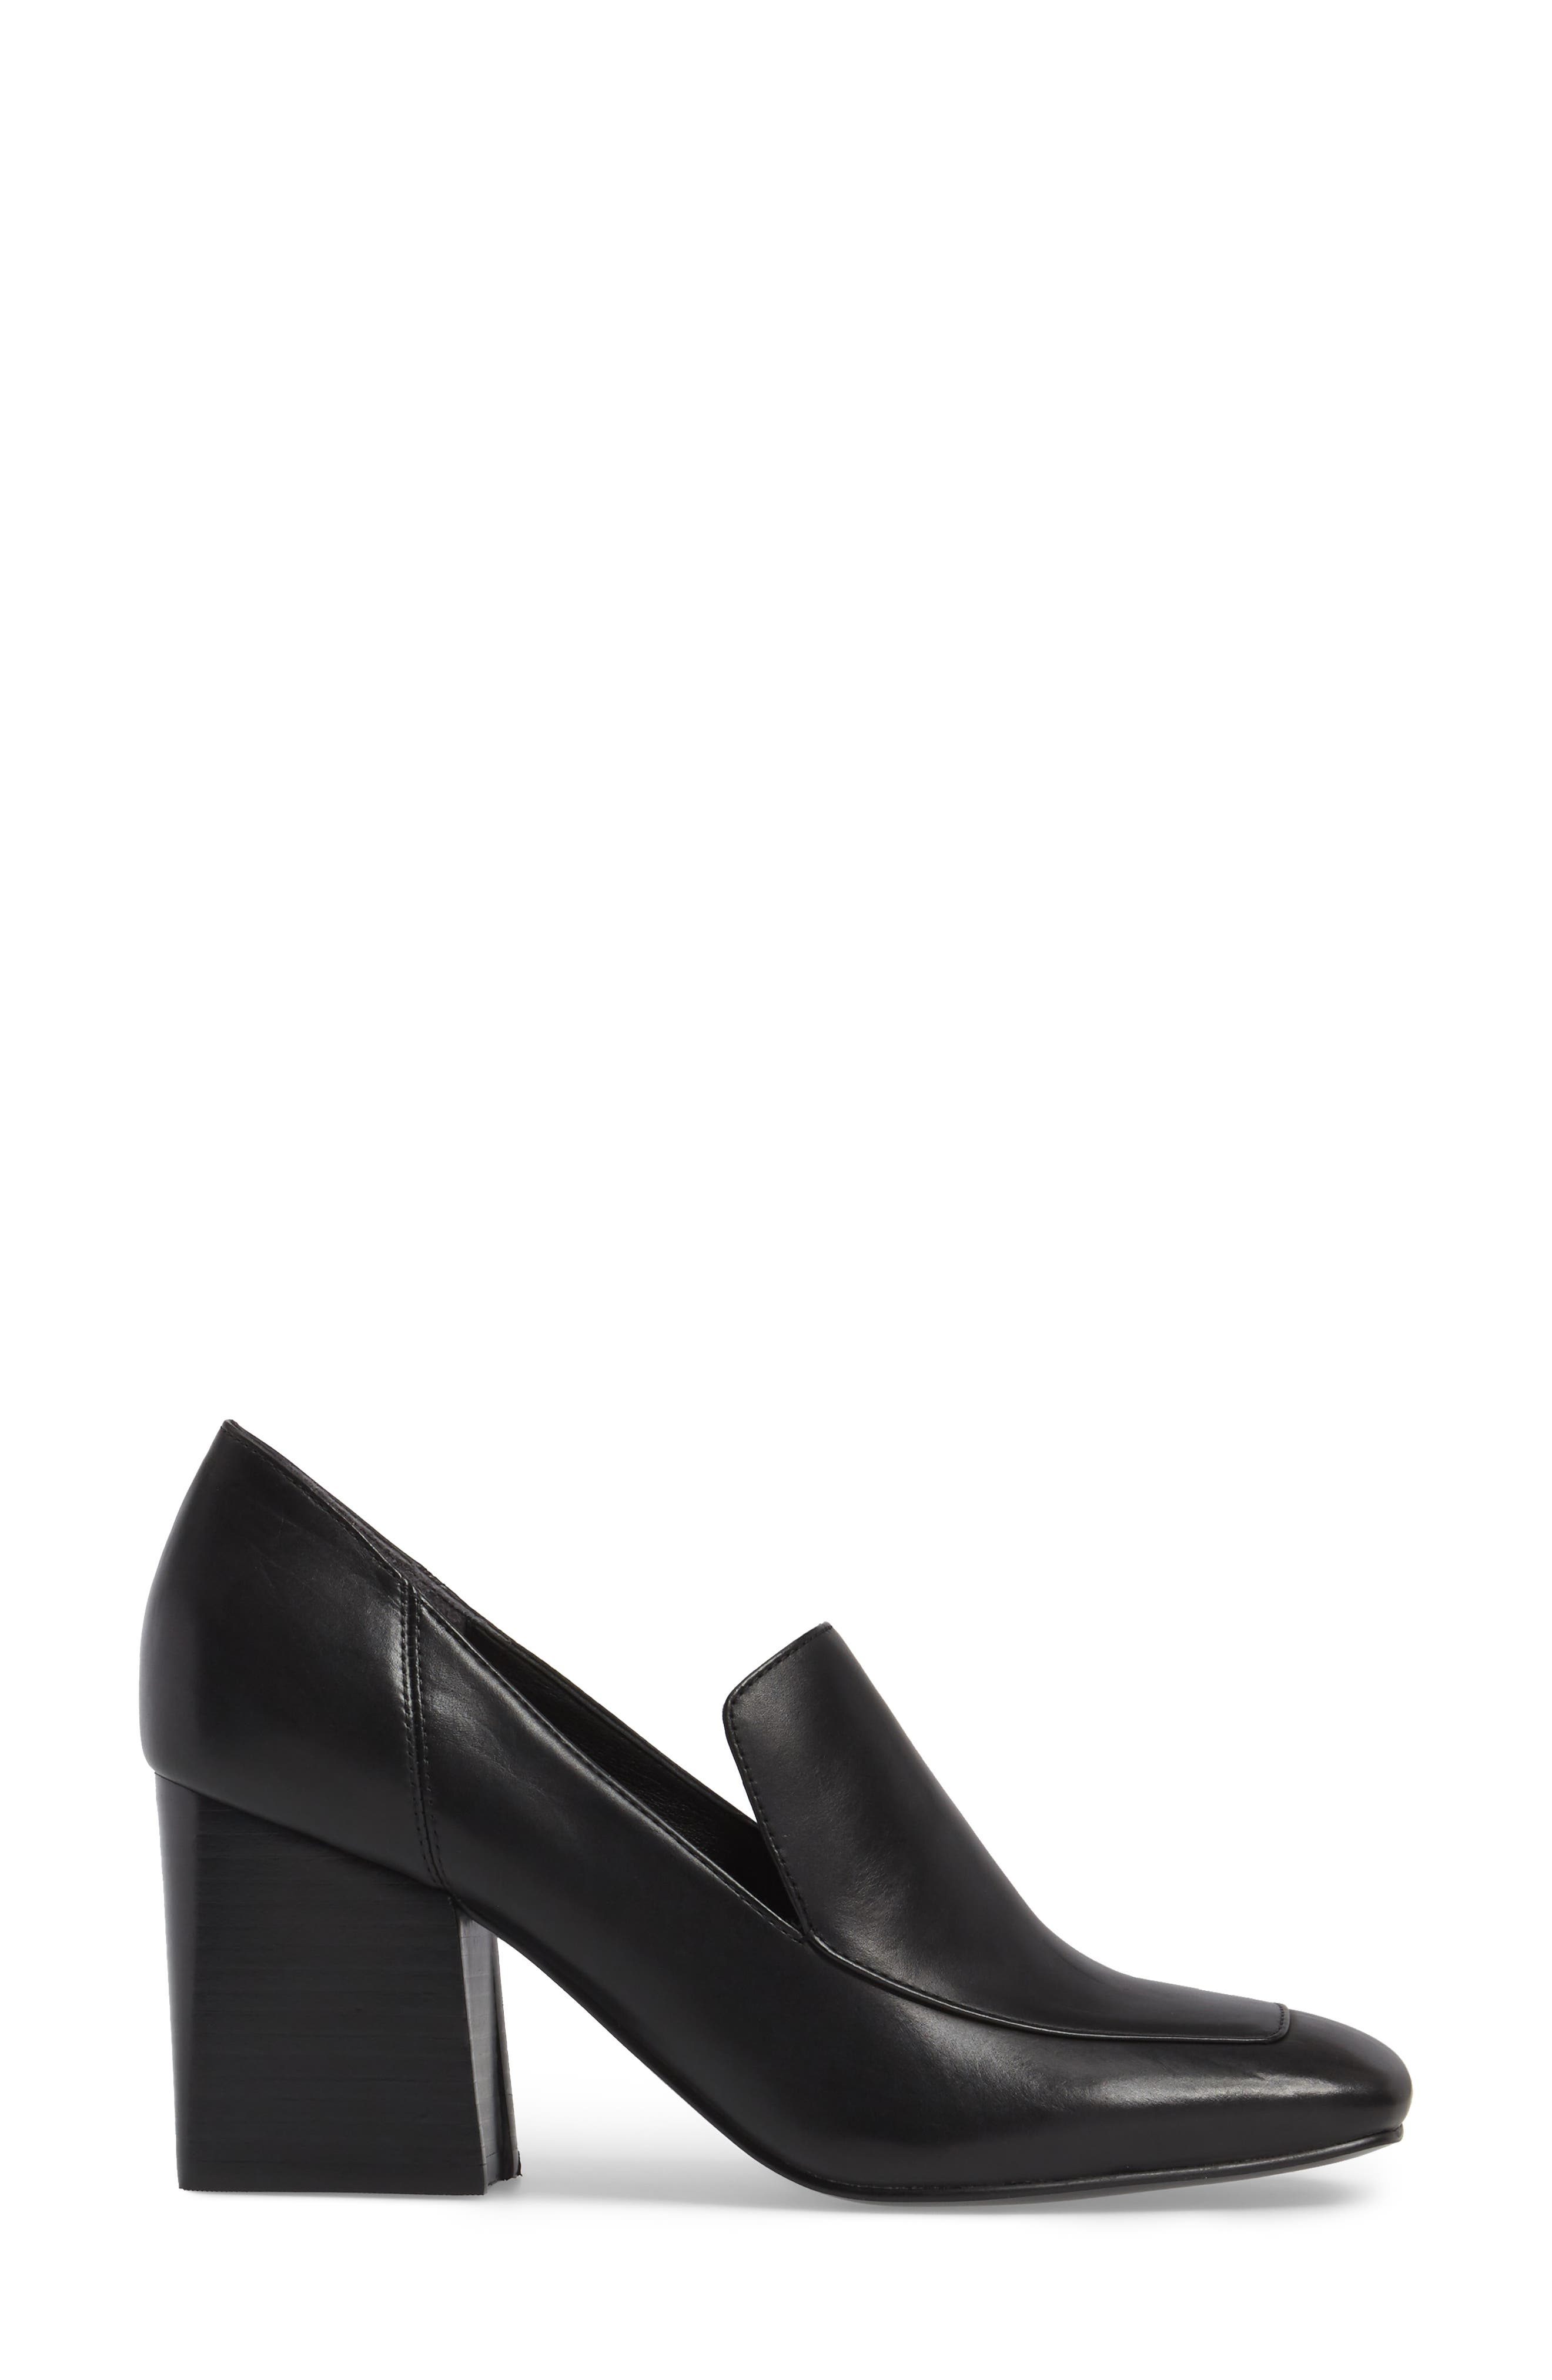 Marlo Loafer Pump,                             Alternate thumbnail 11, color,